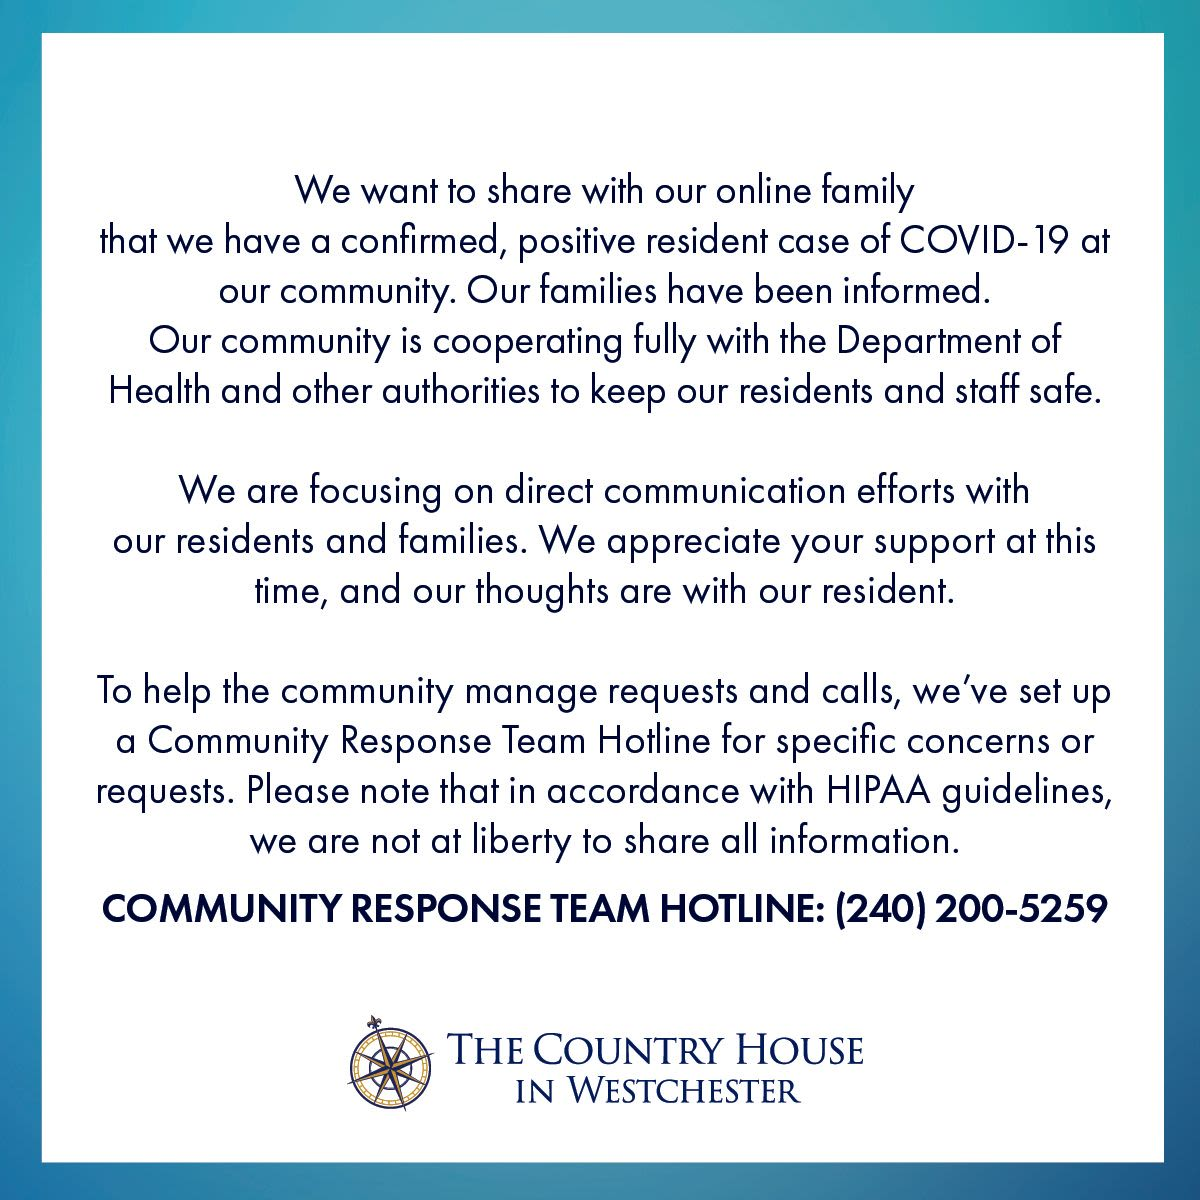 We want to share with our online family that we have a confirmed, positive resident case of COVID-19 at our community. Our families have been informed. Our community is cooperating fully with the Department of Health and other authorities to keep our residents and staff safe.  We are focusing on direct communication efforts with our residents and families. We appreciate your support at this time, and our thoughts are with our resident.  To help the community manage requests and calls, we've set up a Community Response Team Hotline for specific concerns or requests. Please note that in accordance with HIPAA guidelines, we are not at liberty to share all information. COMMUNITY RESPONSE TEAM HOTLINE: (240) 200-5259